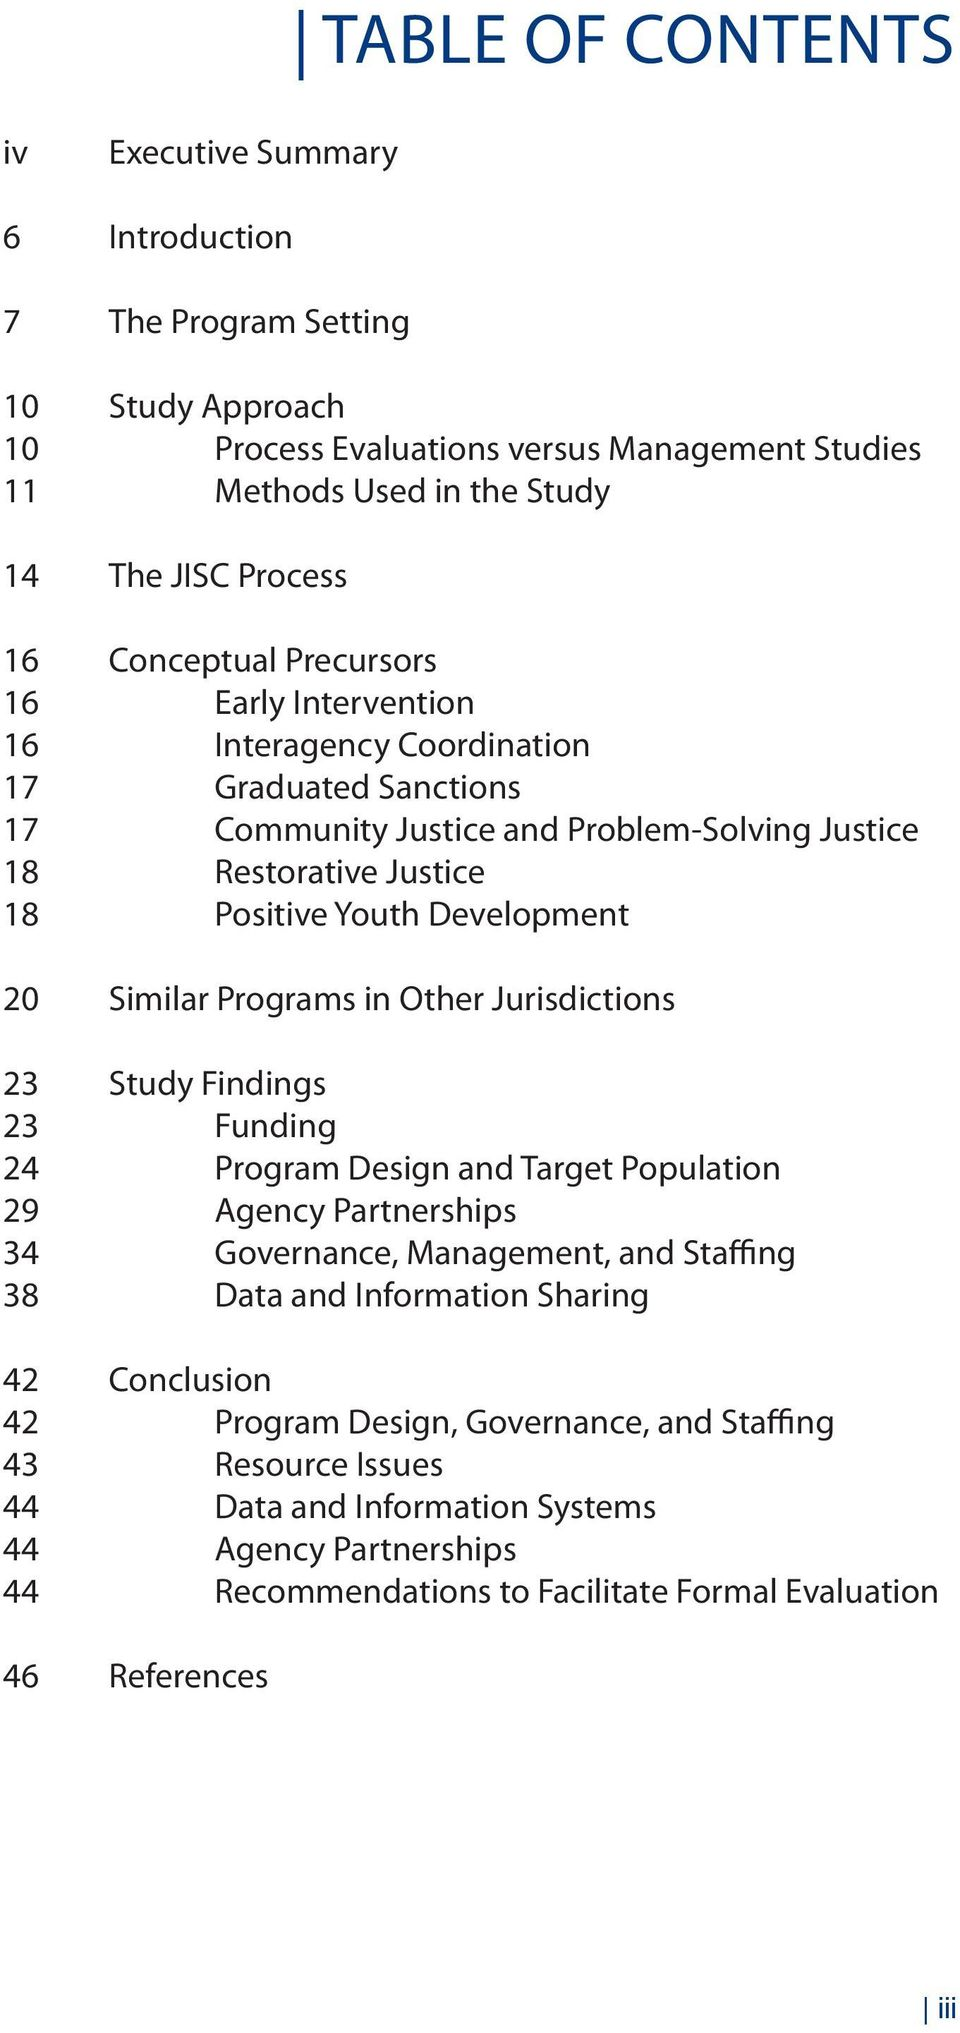 Similar Programs in Other Jurisdictions 23 Study Findings 23 Funding 24 Program Design and Target Population 29 Agency Partnerships 34 governance, Management, and Staffing 38 data and Information